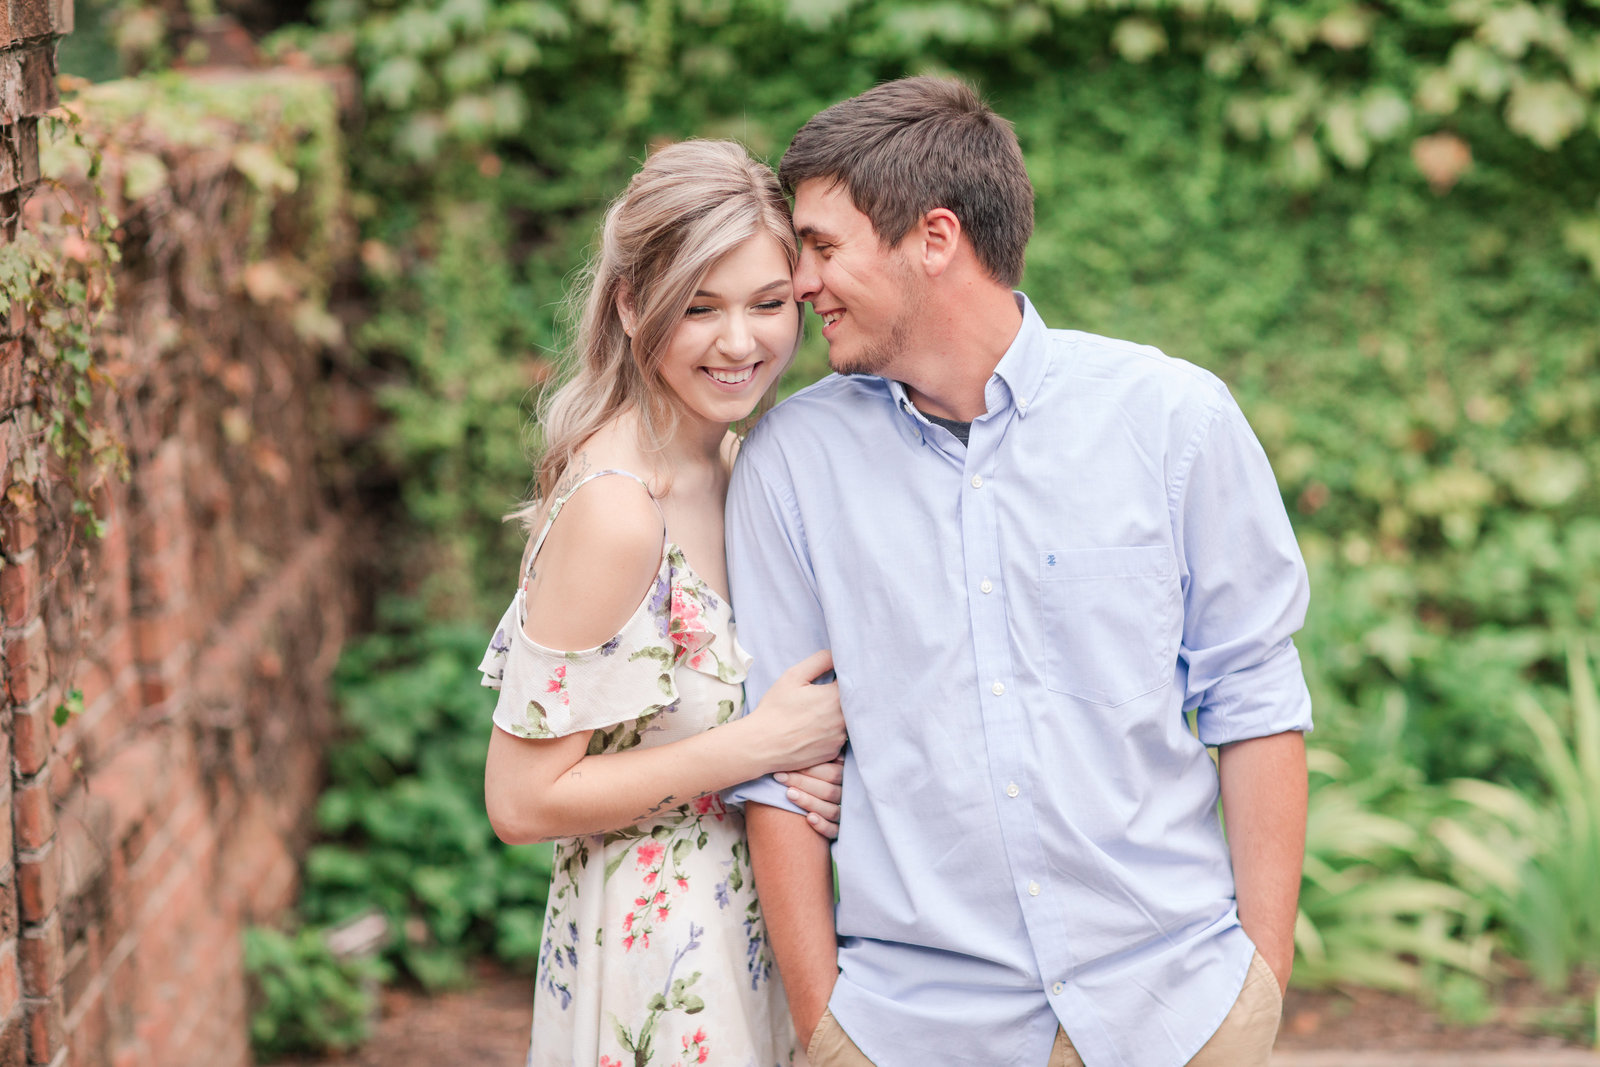 Jennifer B Photography-Sandhills Horticultural Gardens Engagement-Pinehurst NC-Cody and Kayla-2019-0108